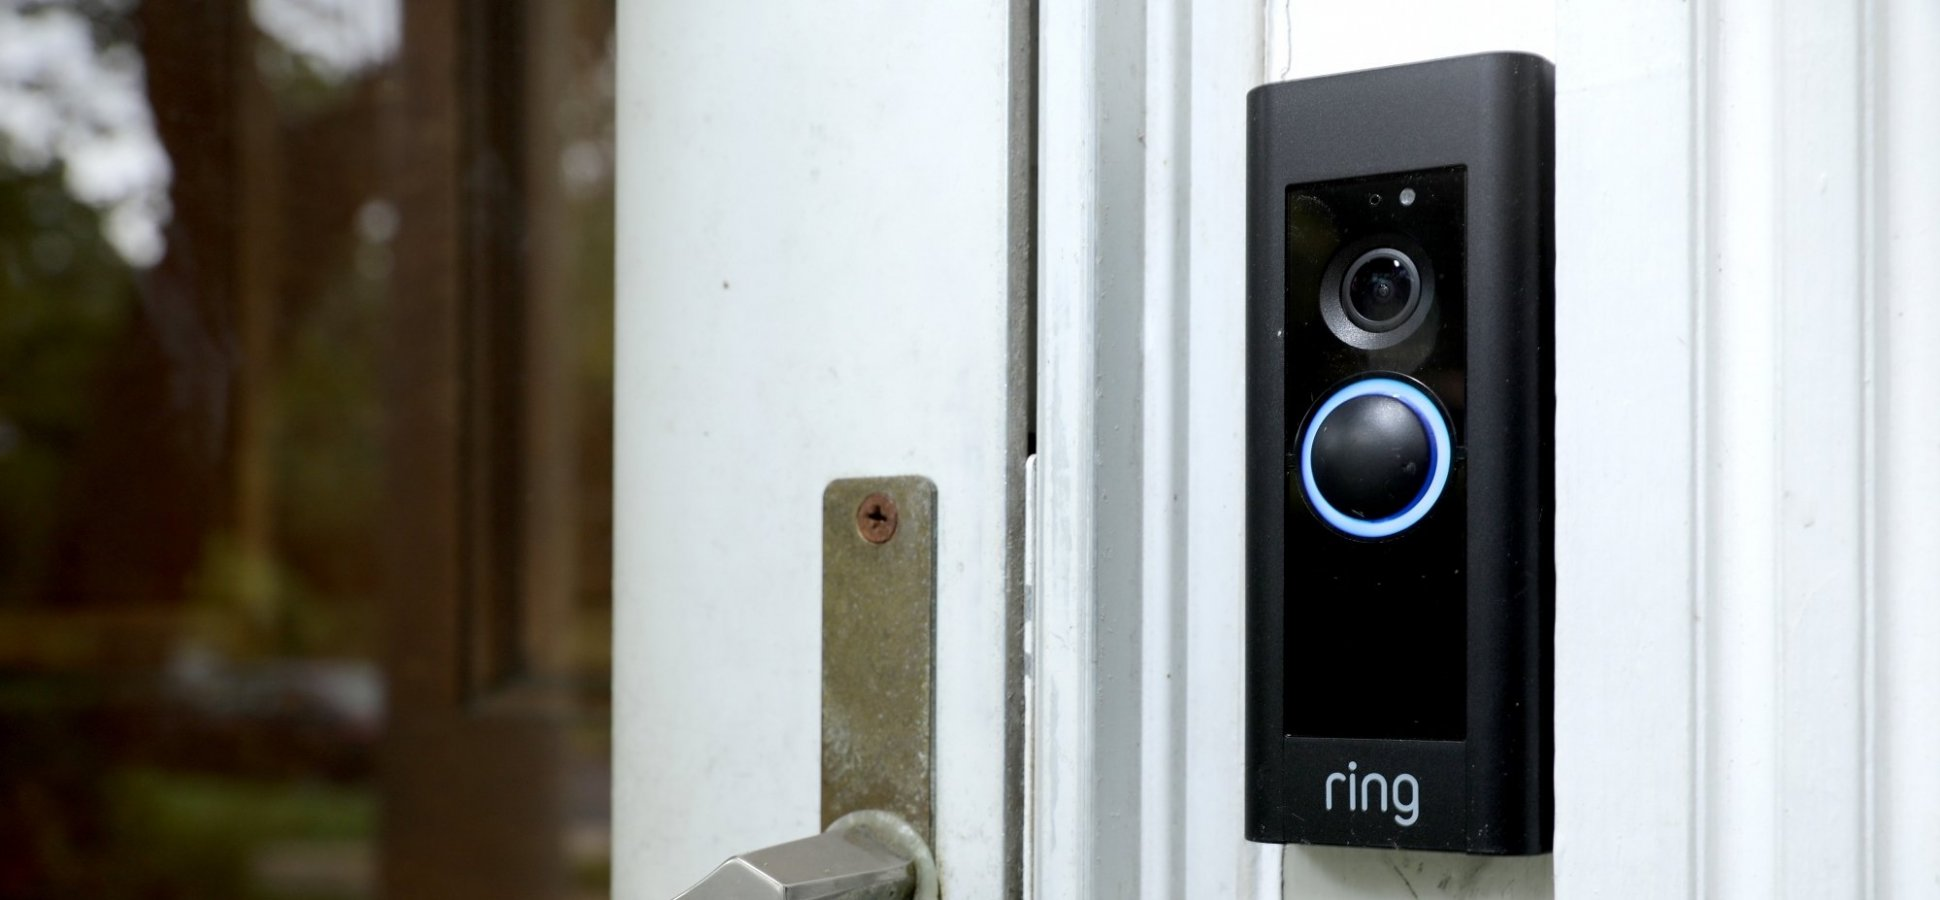 If You Use a Ring Doorbell, Facebook Is Tracking You